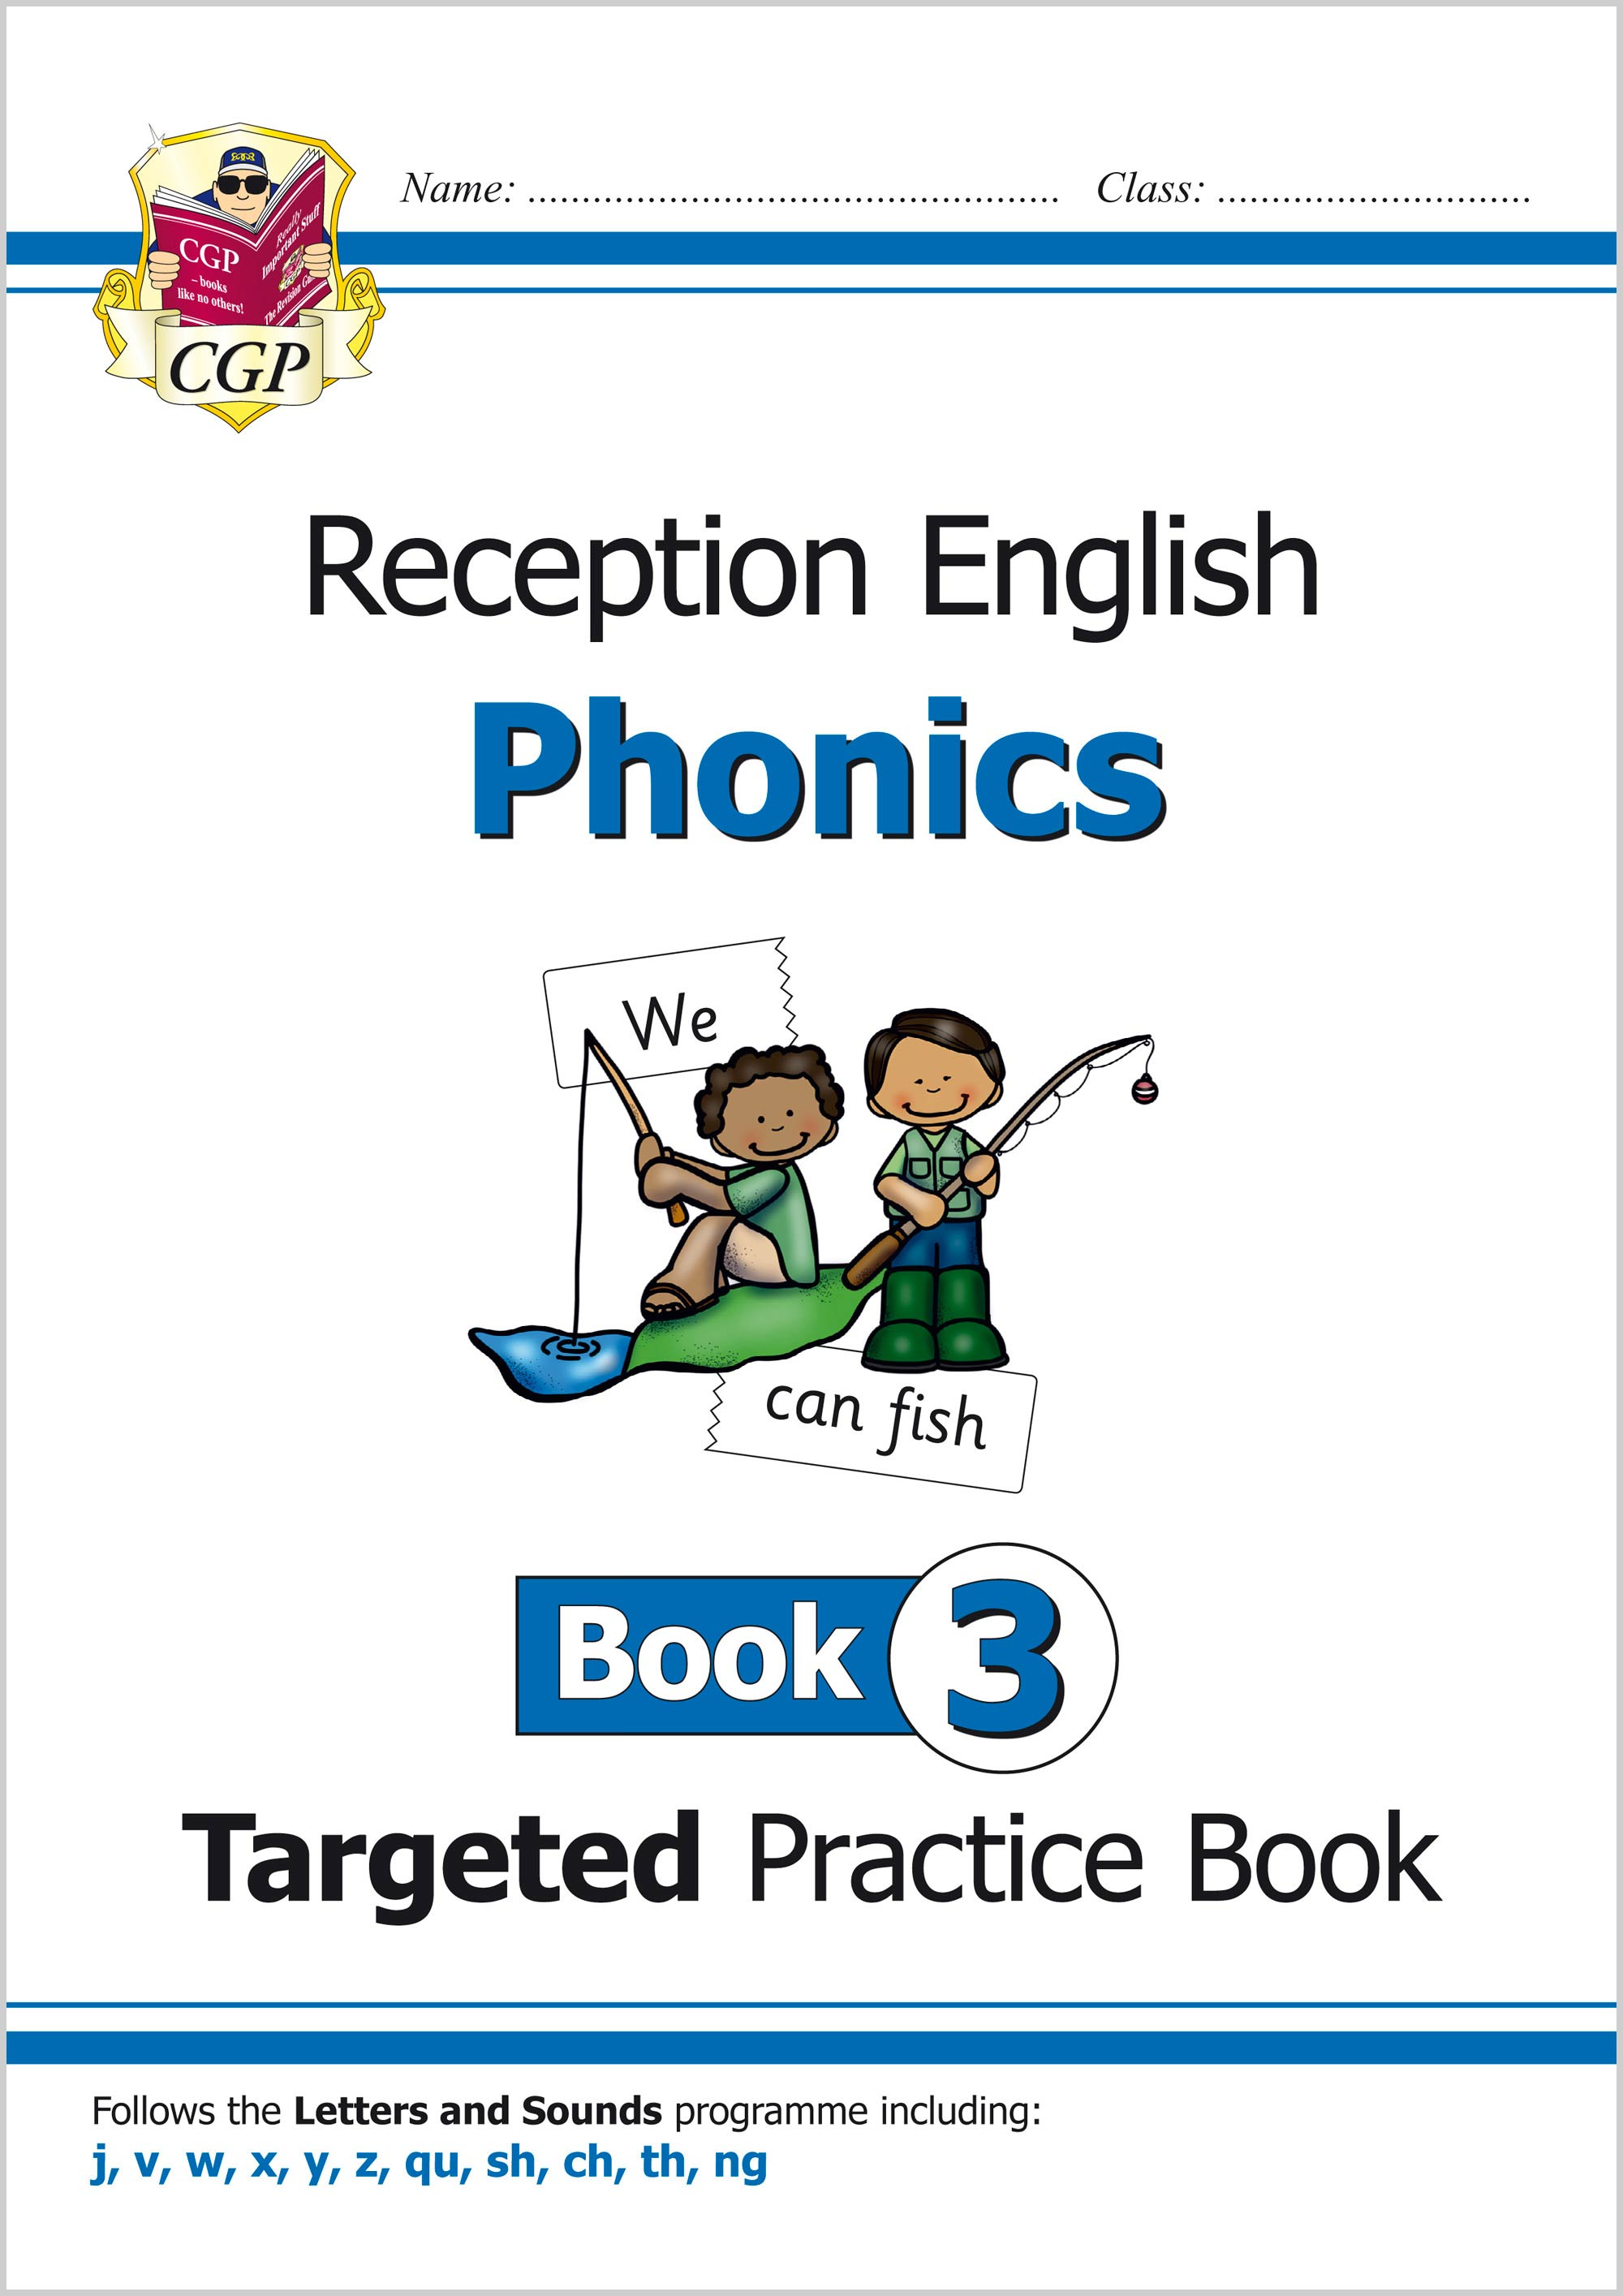 EROW311 - New English Targeted Practice Book: Phonics - Reception Book 3